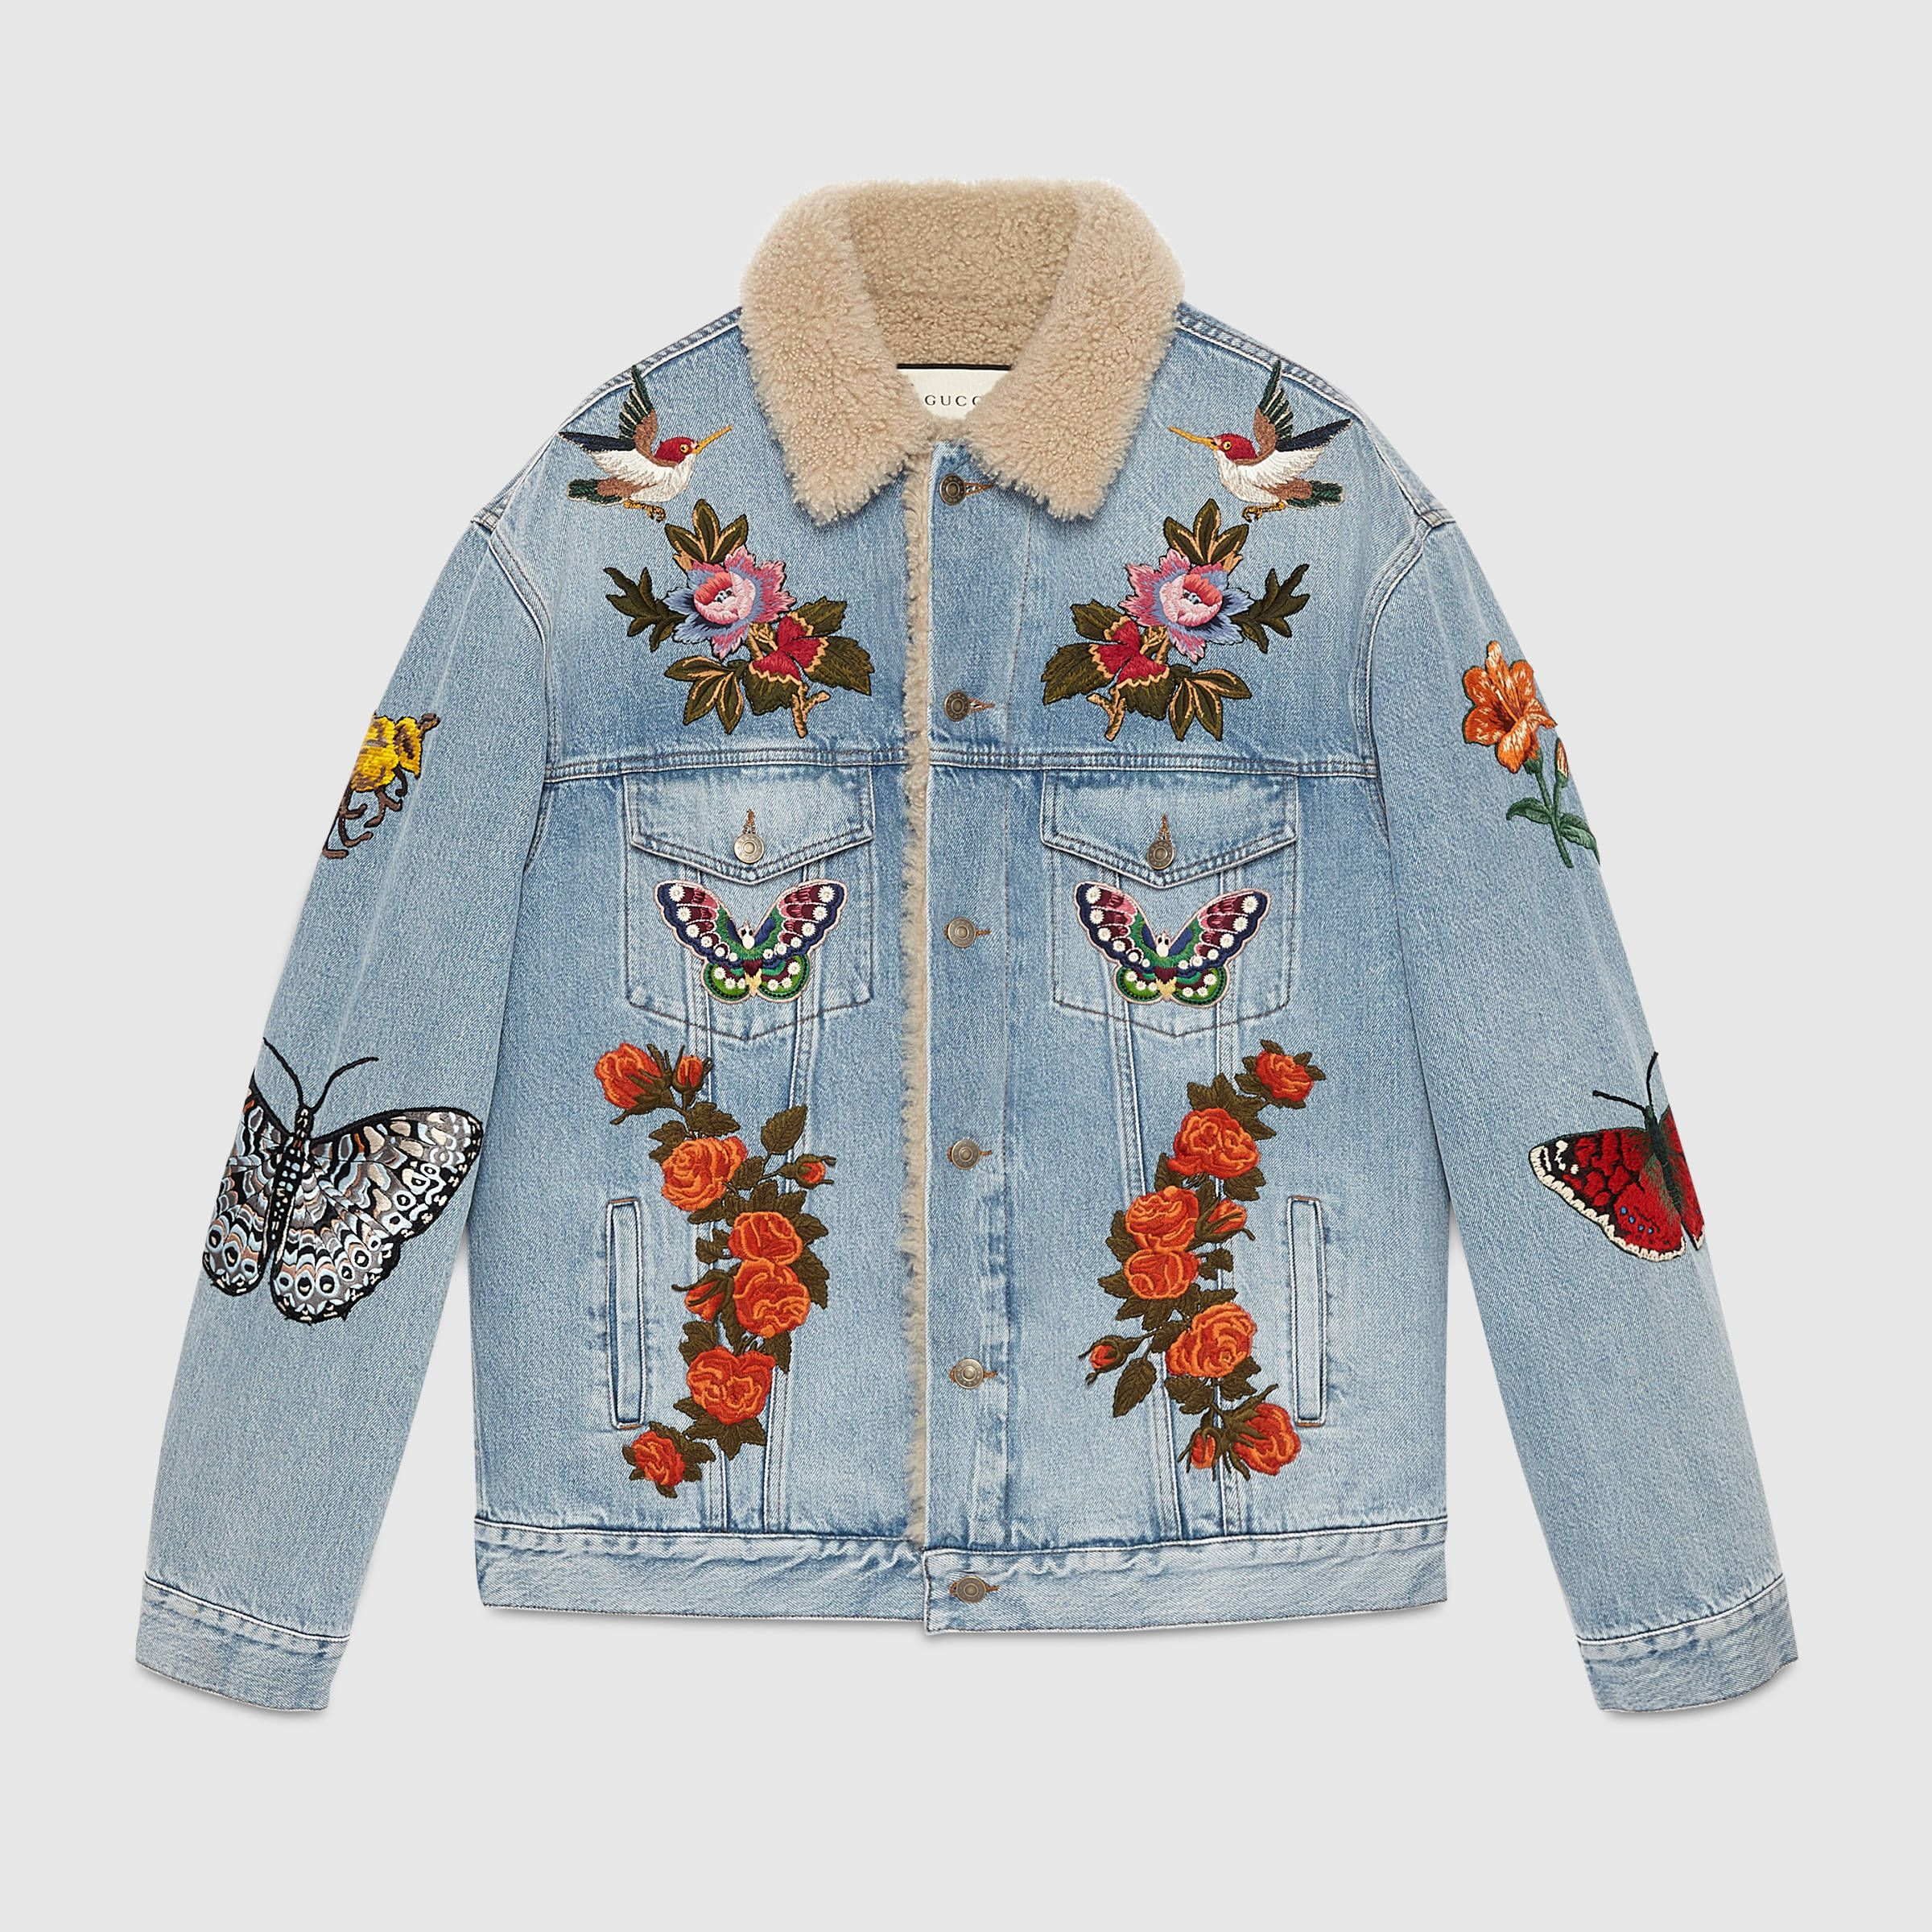 Veste en jean avec broderies   Closet   Pinterest   Embroidered ... a36fd551272